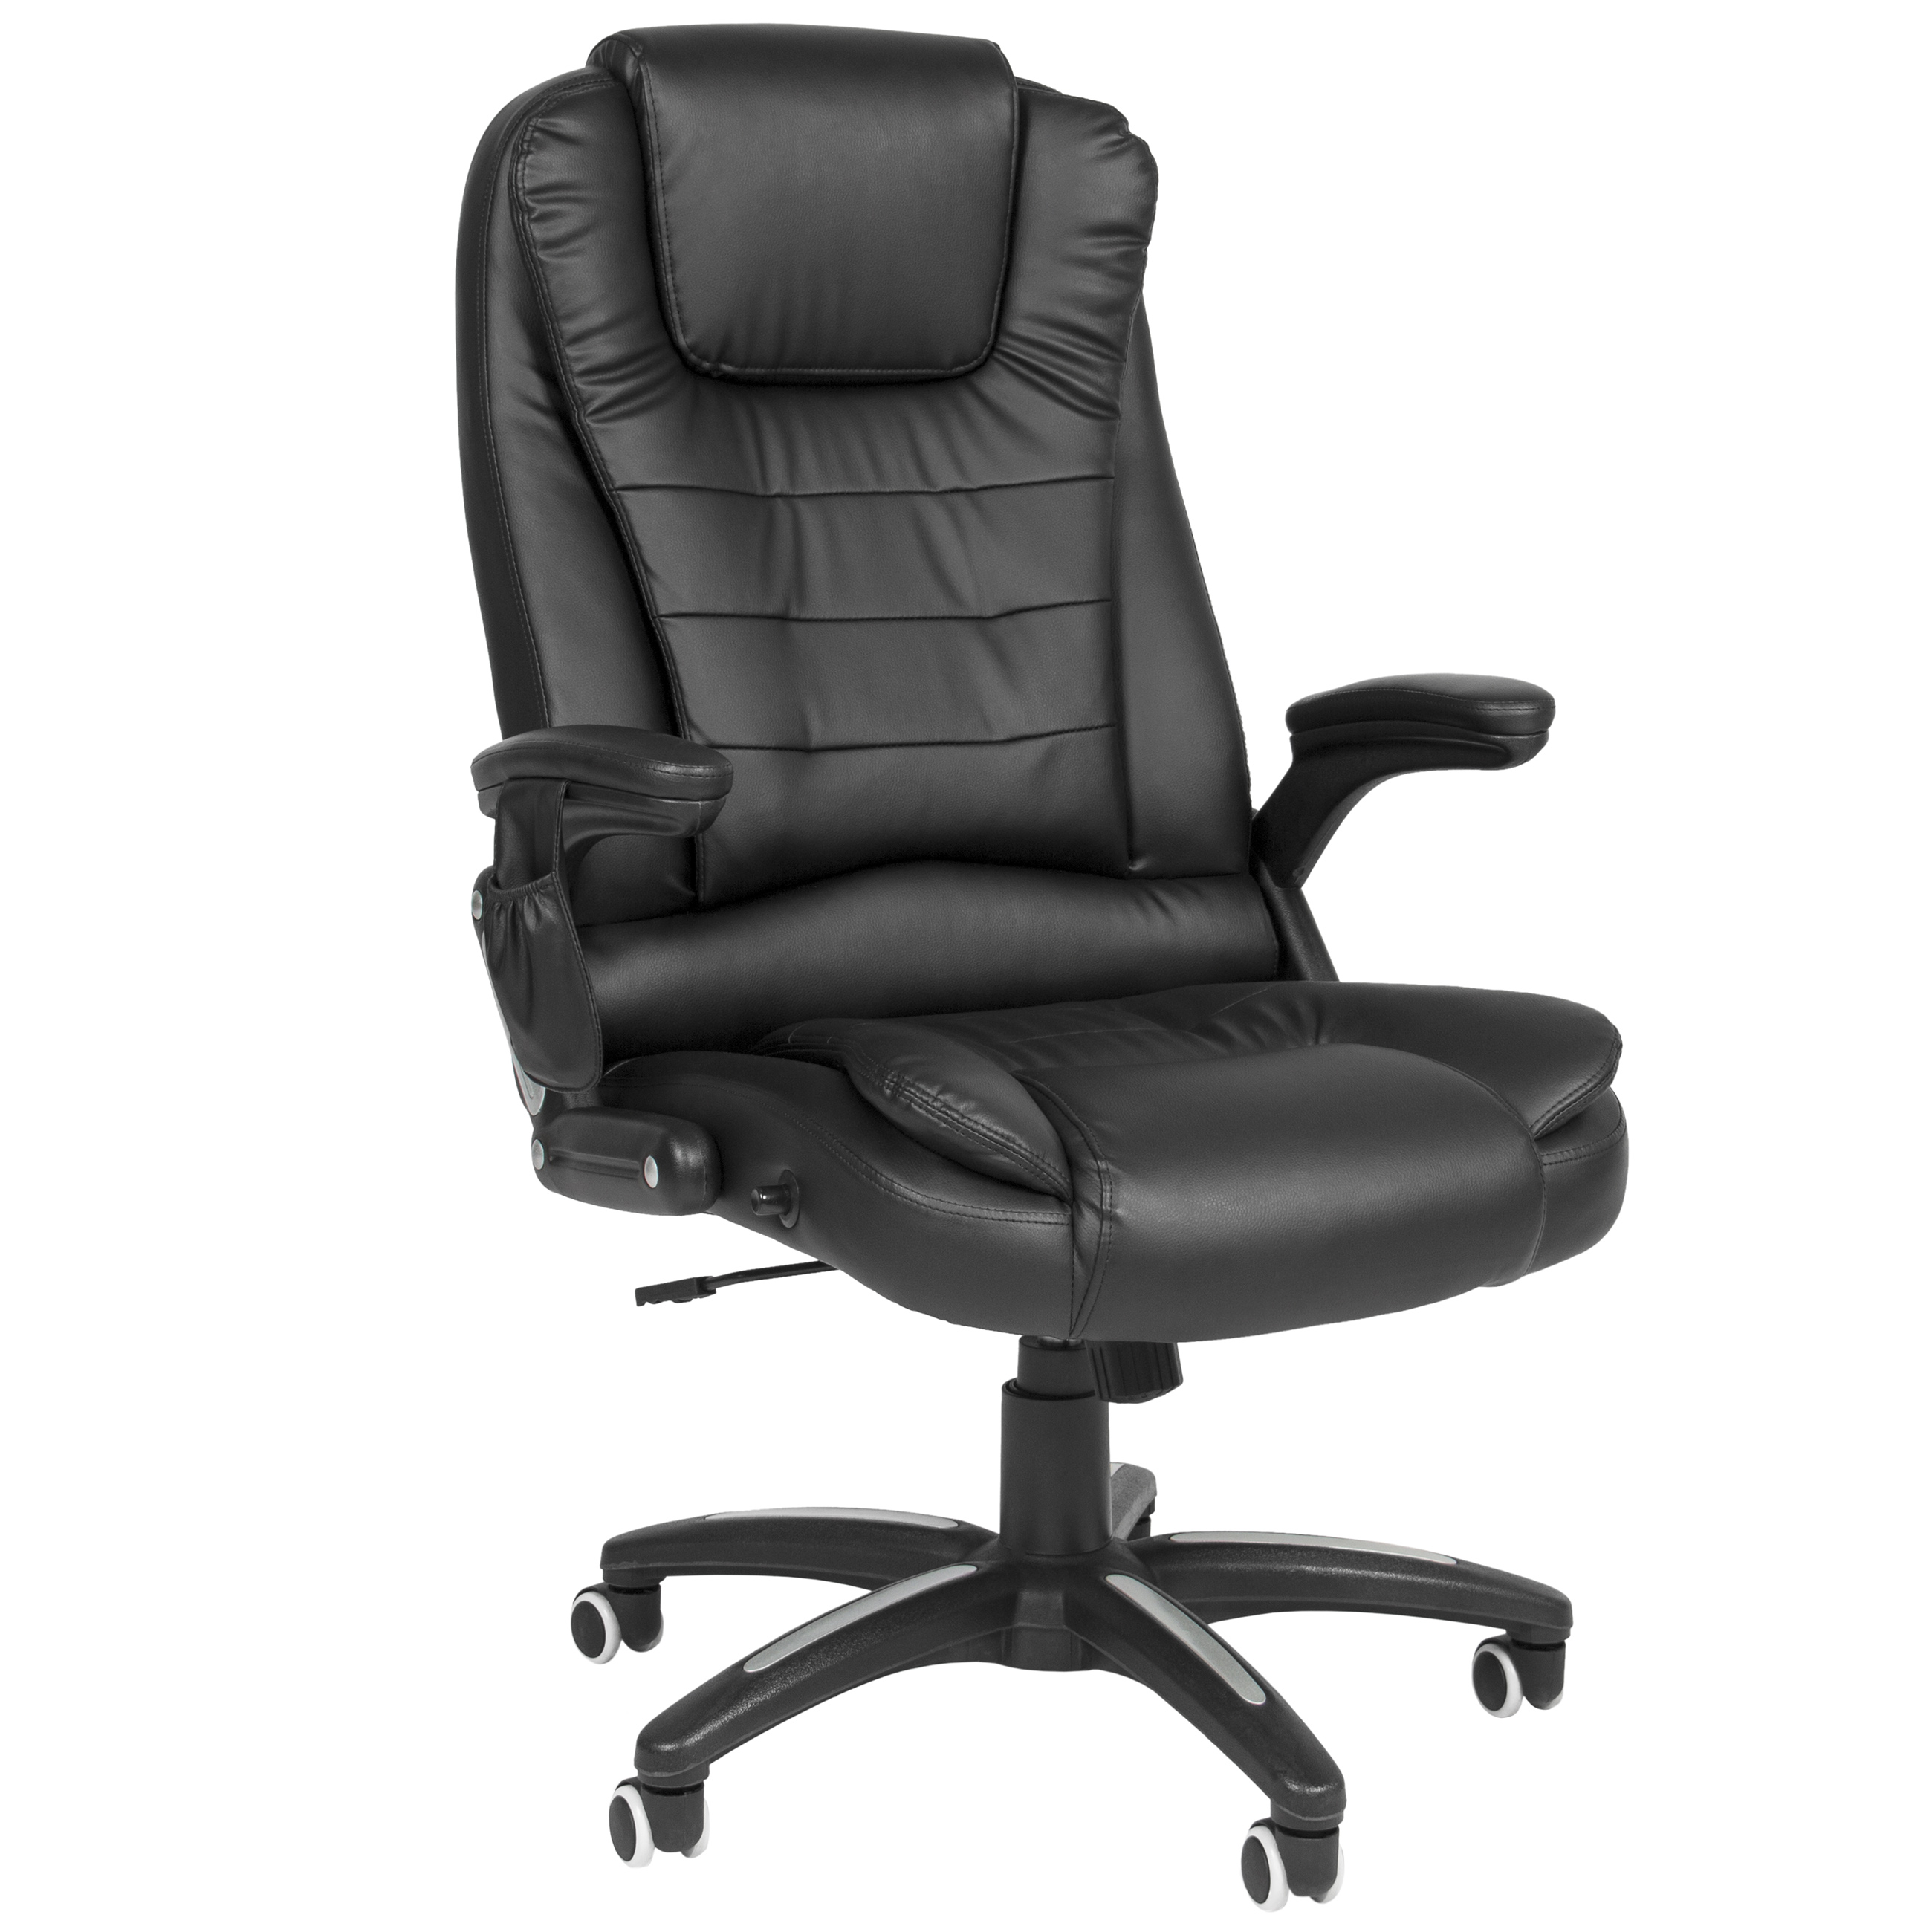 Best Choice Products Executive Ergonomic Heated Vibrating Computer Office Massage Chair Black